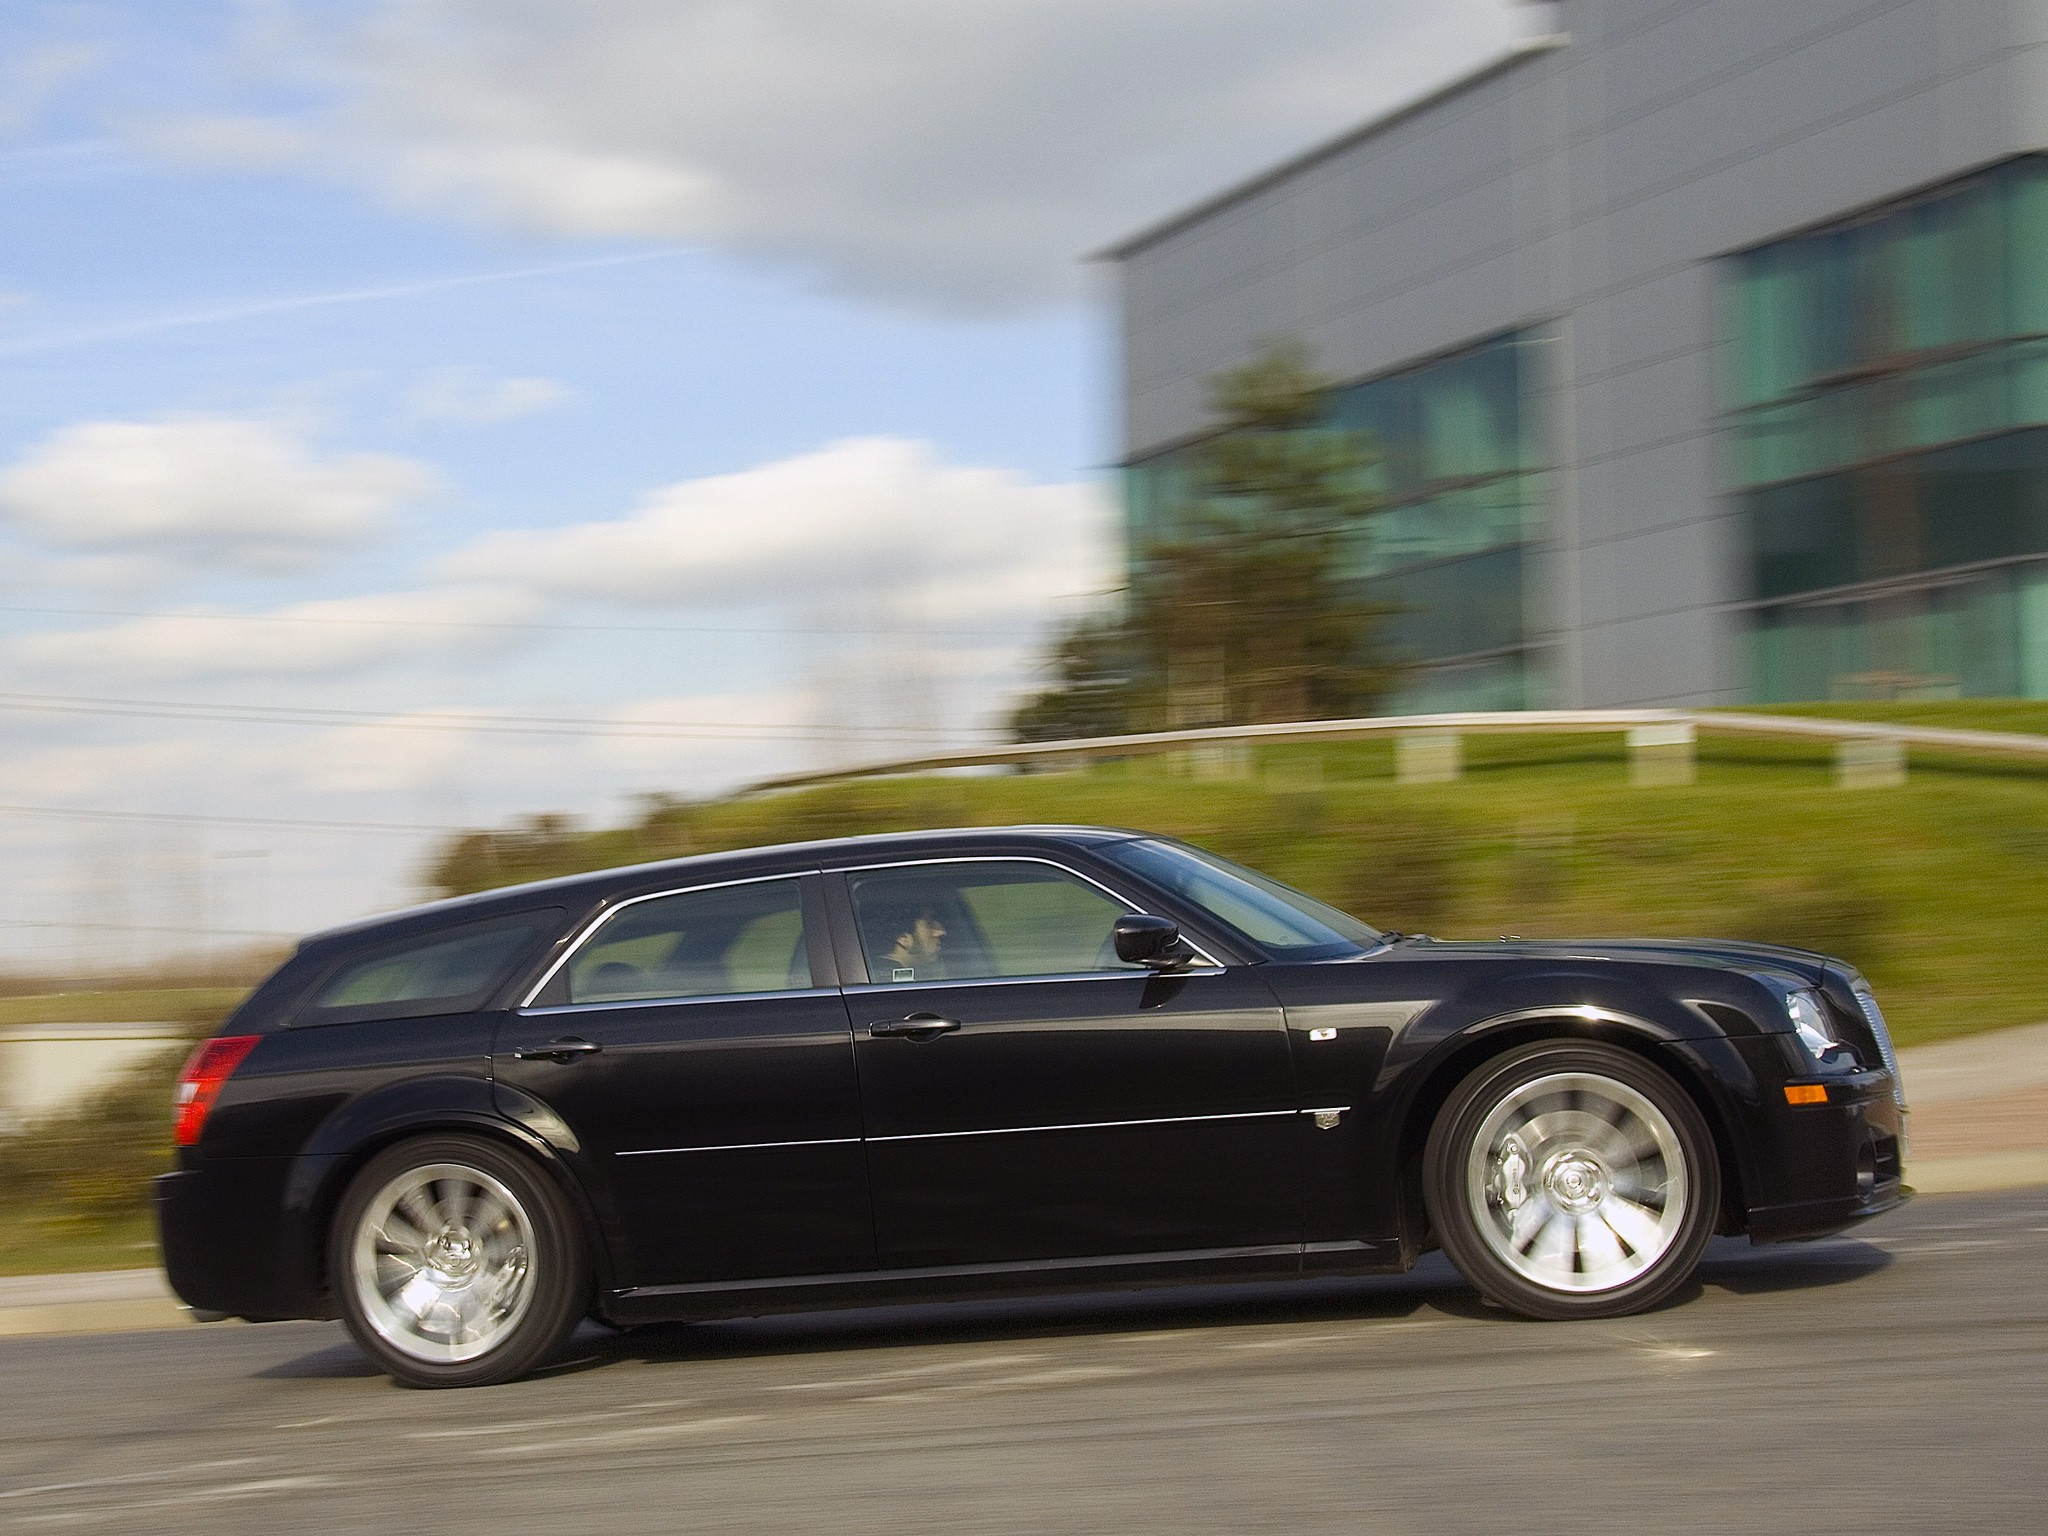 Chrysler 300c 2019 New Car Specs And Price 2020 2005 300 Owners Manual Srt8 Touring Photos Catalog 2018